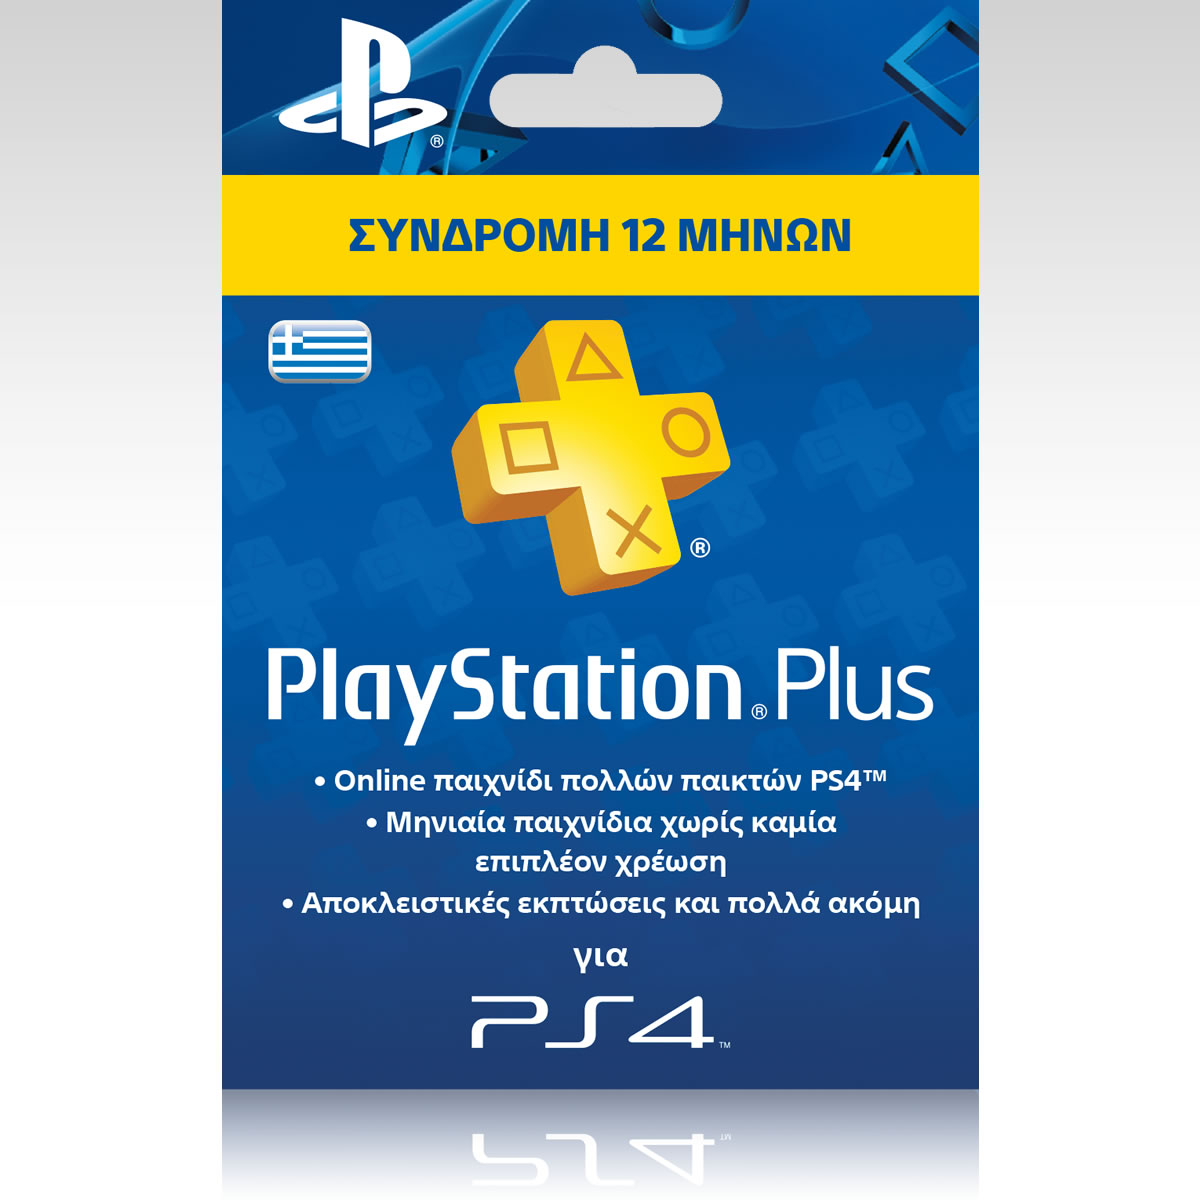 SONY PLAYSTATION PLUS SUBSCRIPTION 12 MONTHS Hanging Card (PSN)